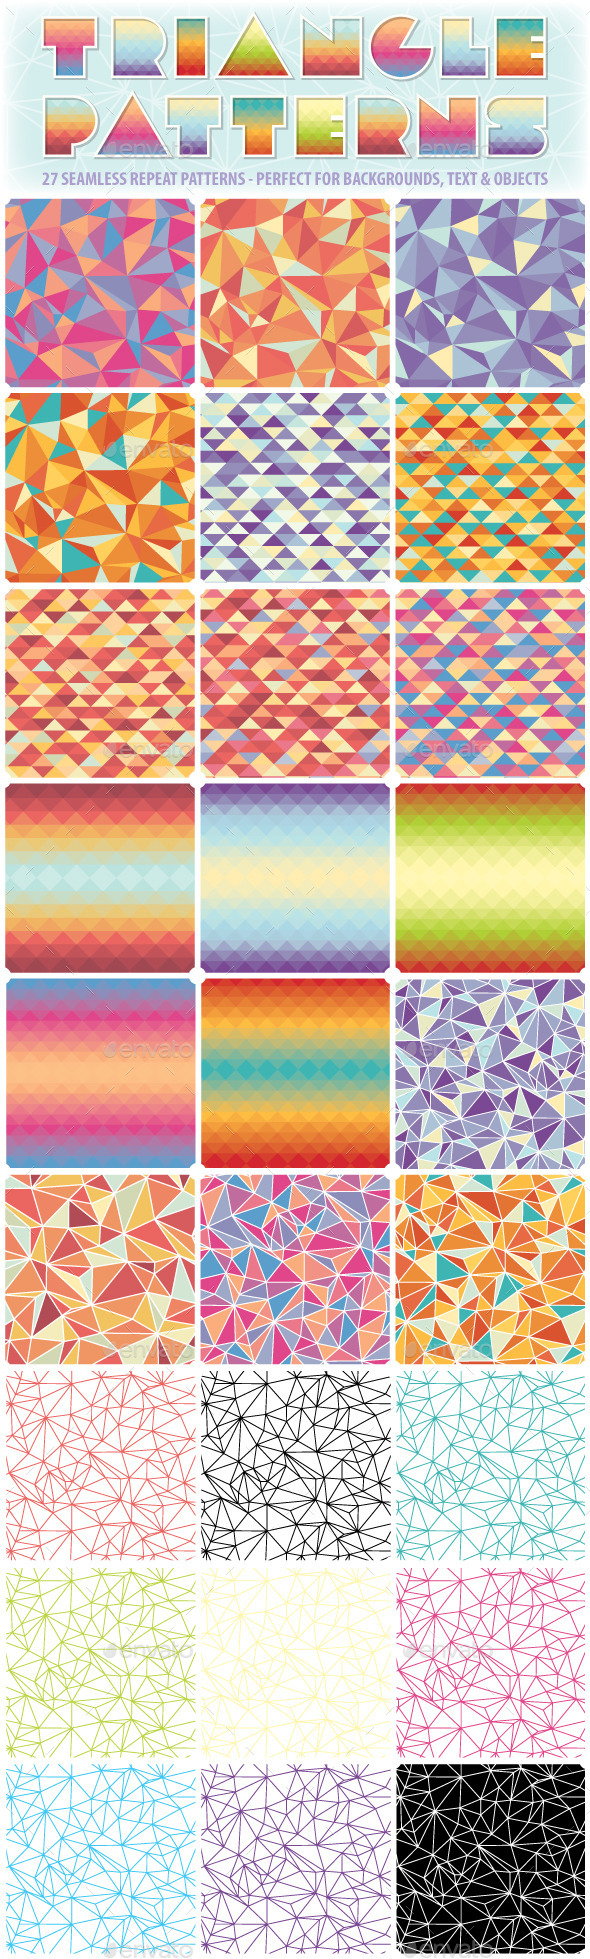 Triangle Repeat Patterns - Patterns Decorative